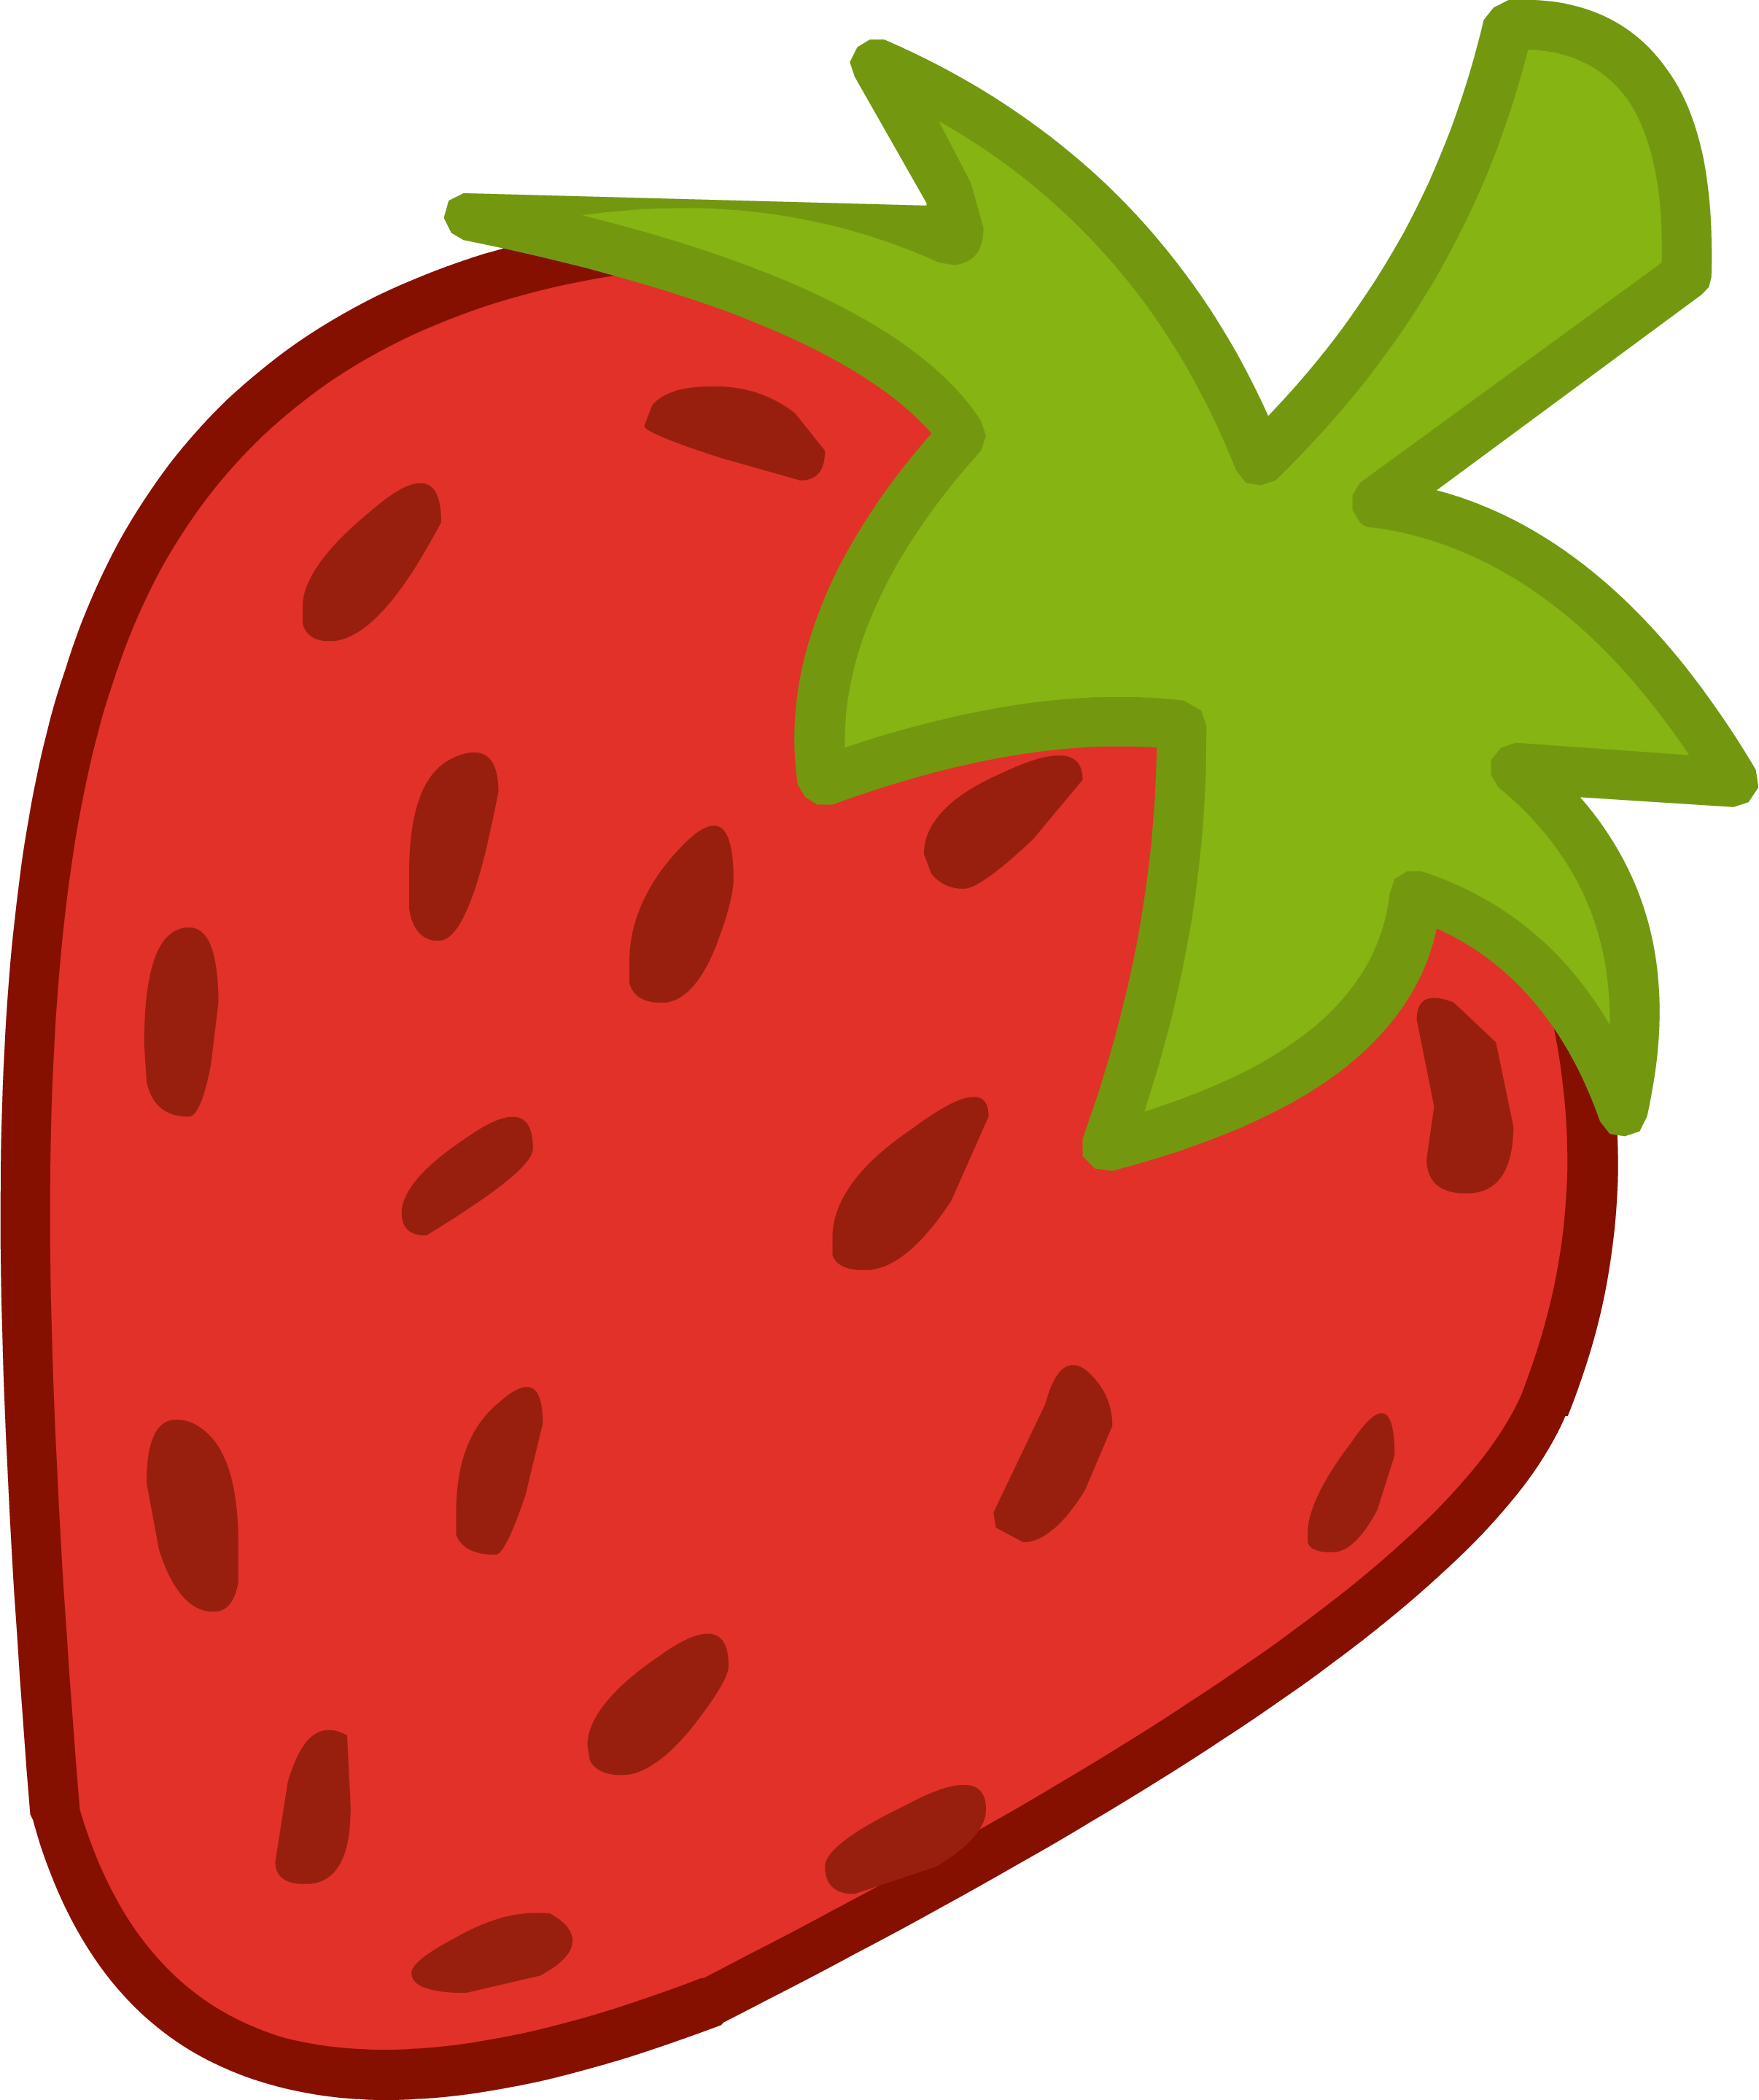 Strawberries clipart. Strawberry shortcake free clip